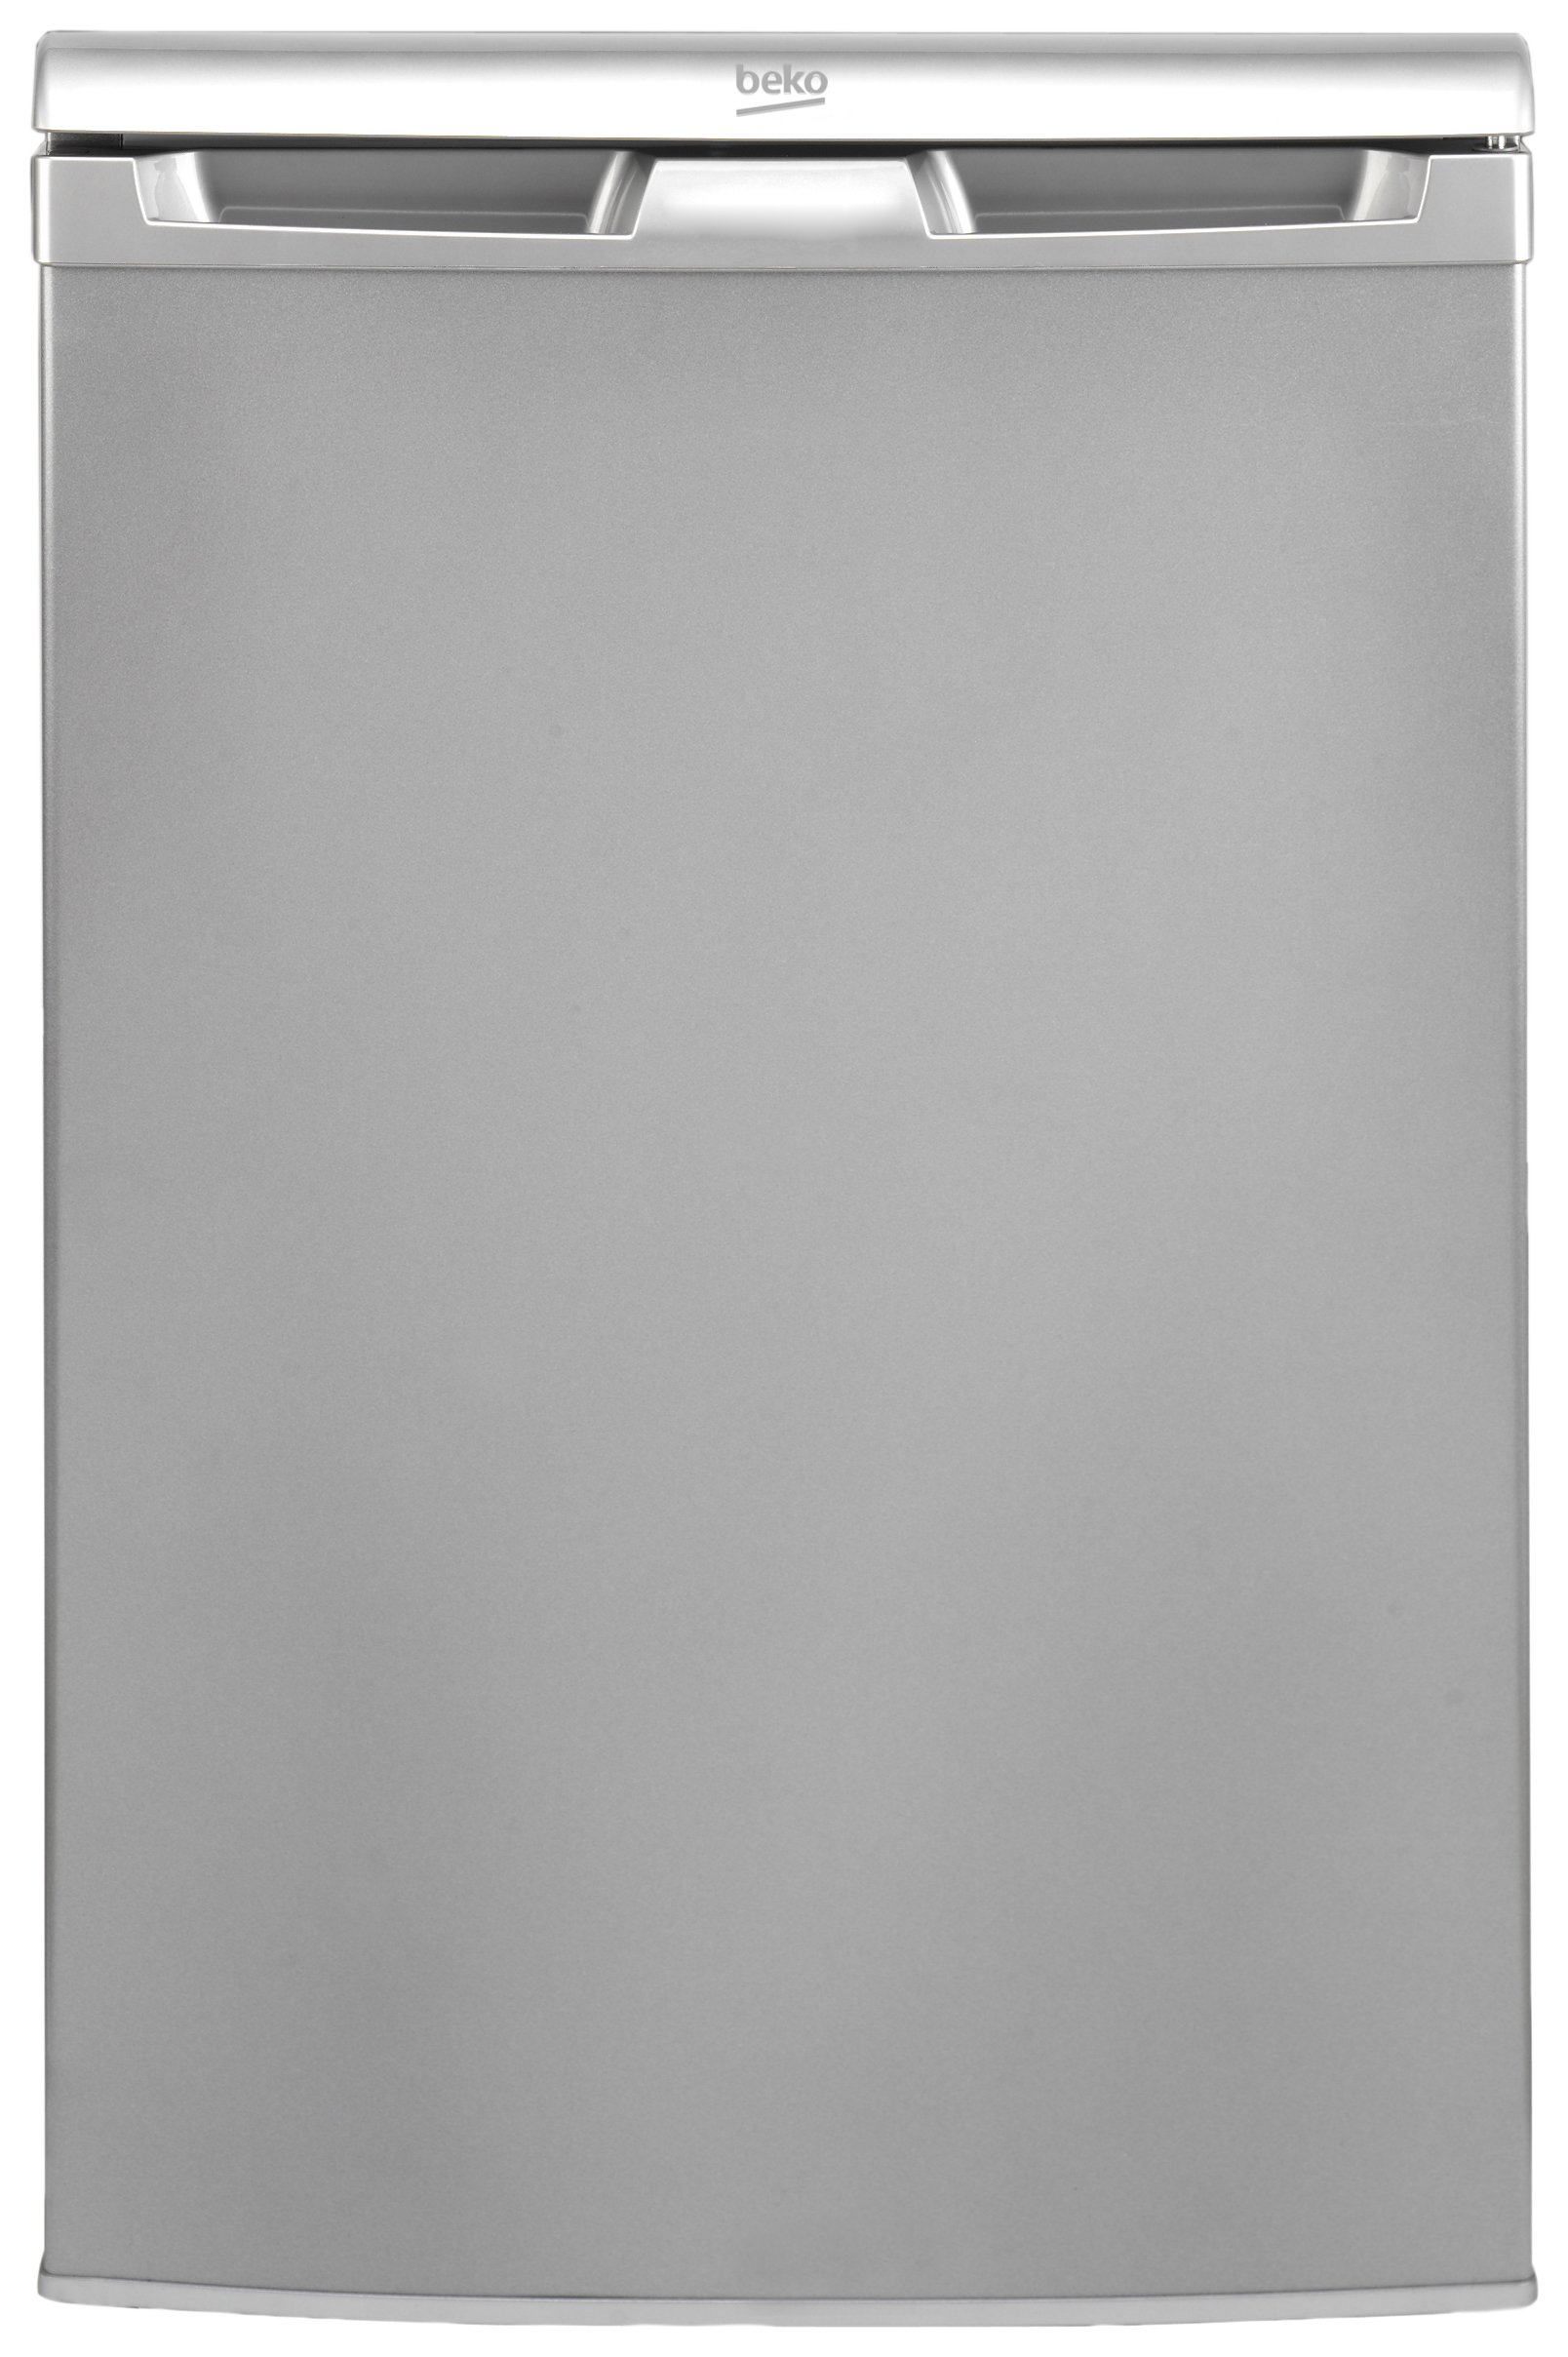 Beko - UF584AP - Under Counter - Freezer - Silver from Beko